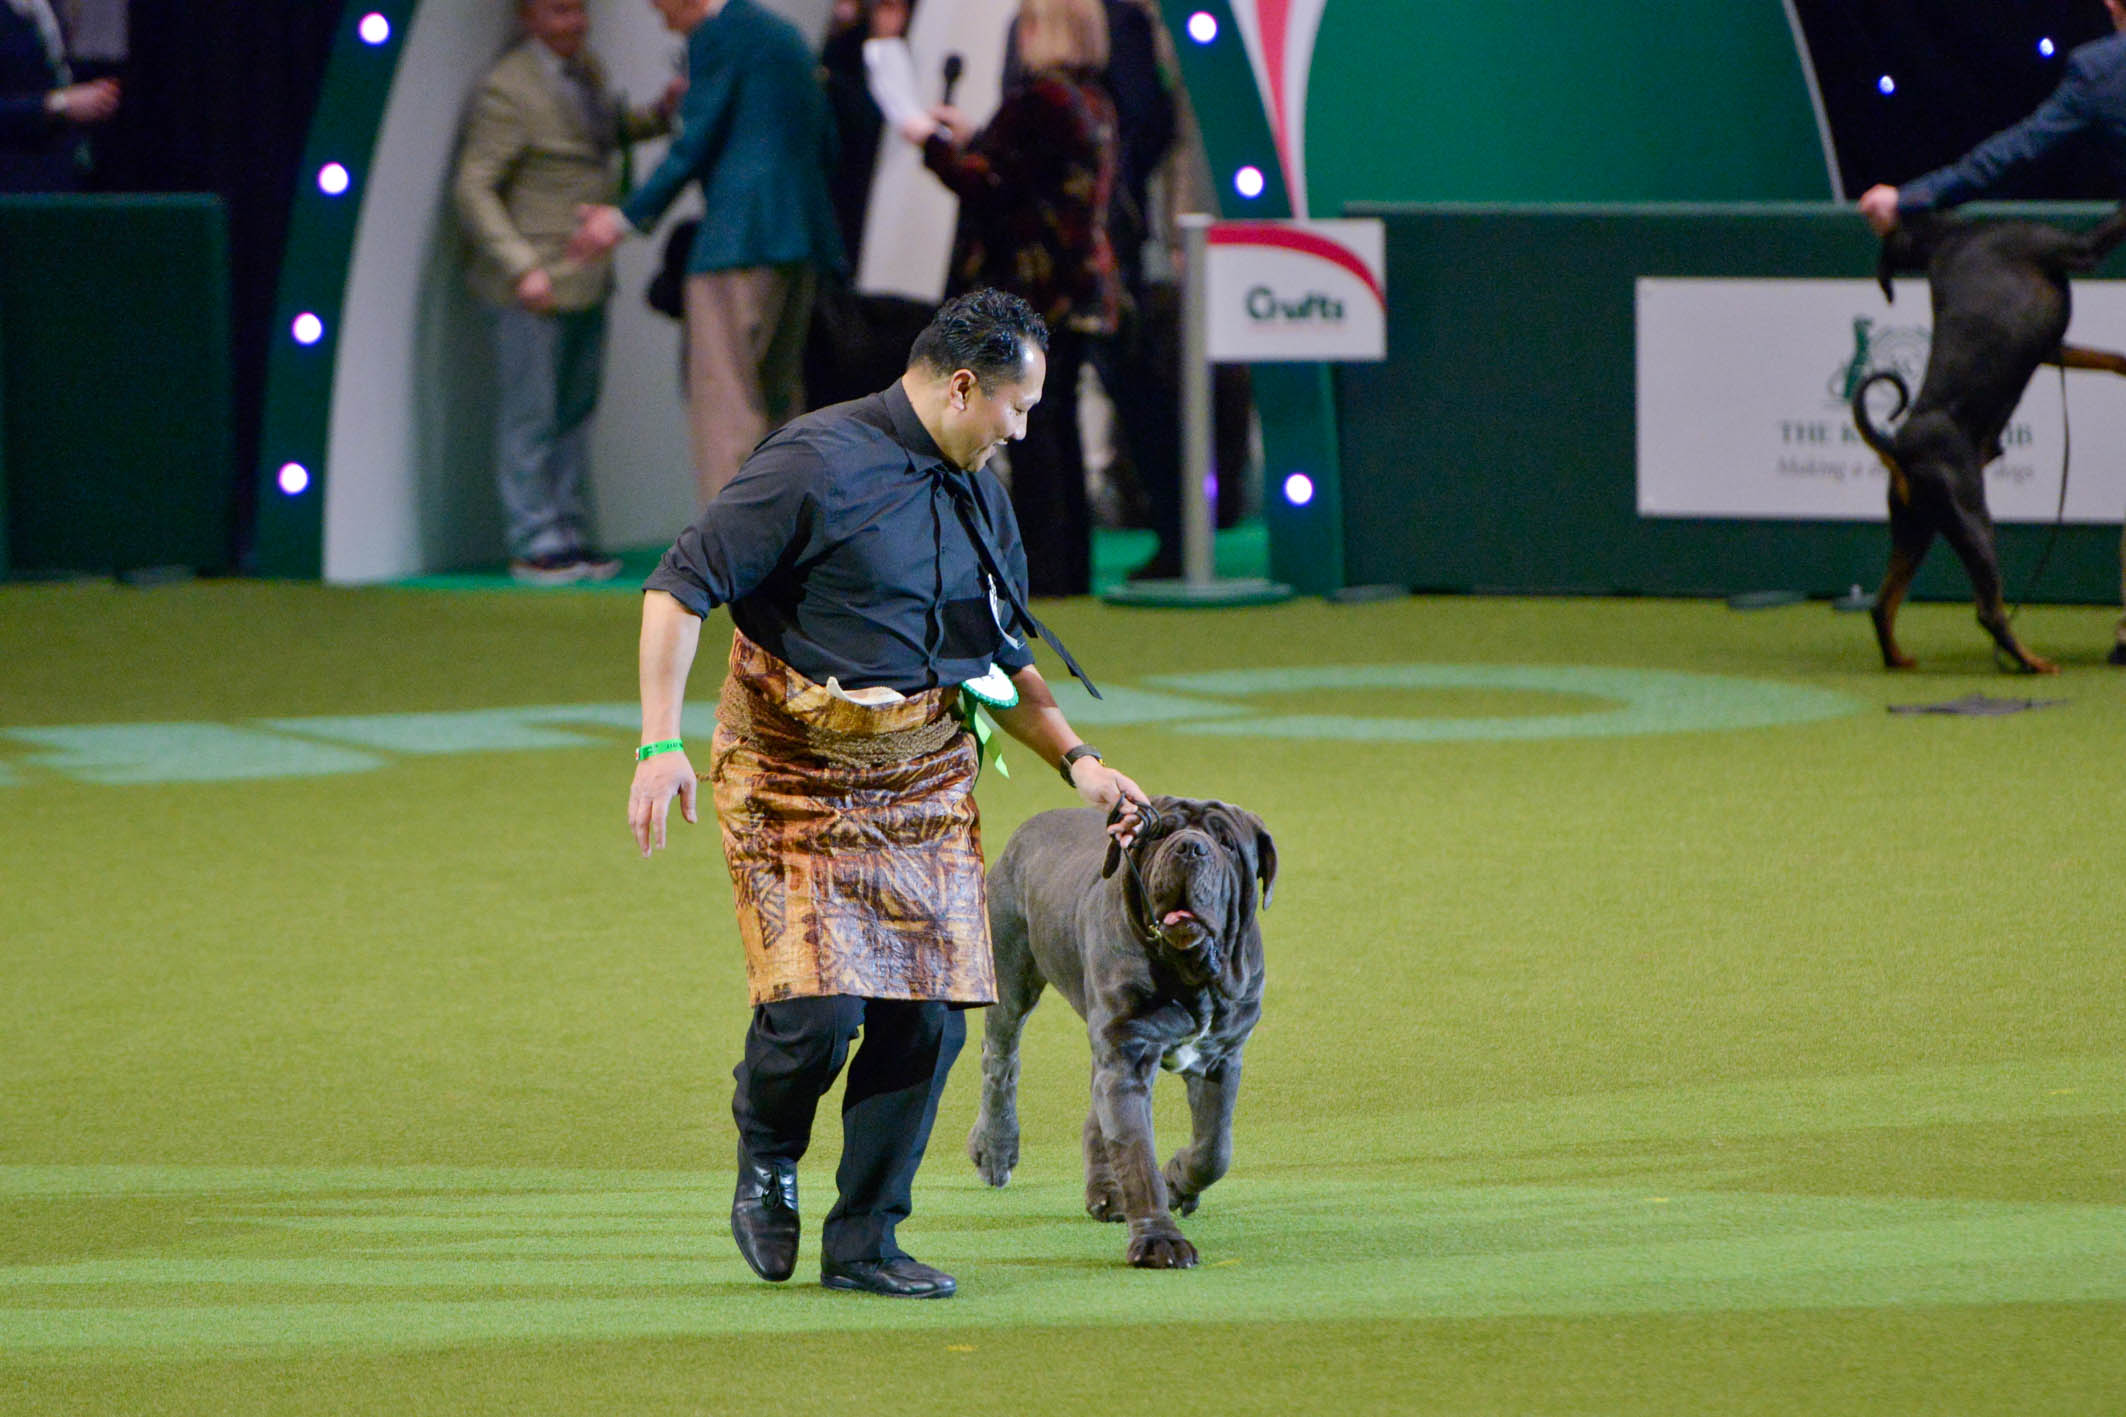 """Mateaki Mafi showing Freddo dei Mastini della Rupe in the Working Group at Crufts. He is wearing a Ta'ovala, a skirt worn in his native Tonga during special occasions, comparable to a suit and tie. In a stroke of cultural insensitivity, Crufts commentator Jesscai Holm called it a """"slobber cloth"""" during the live telecast of the show."""